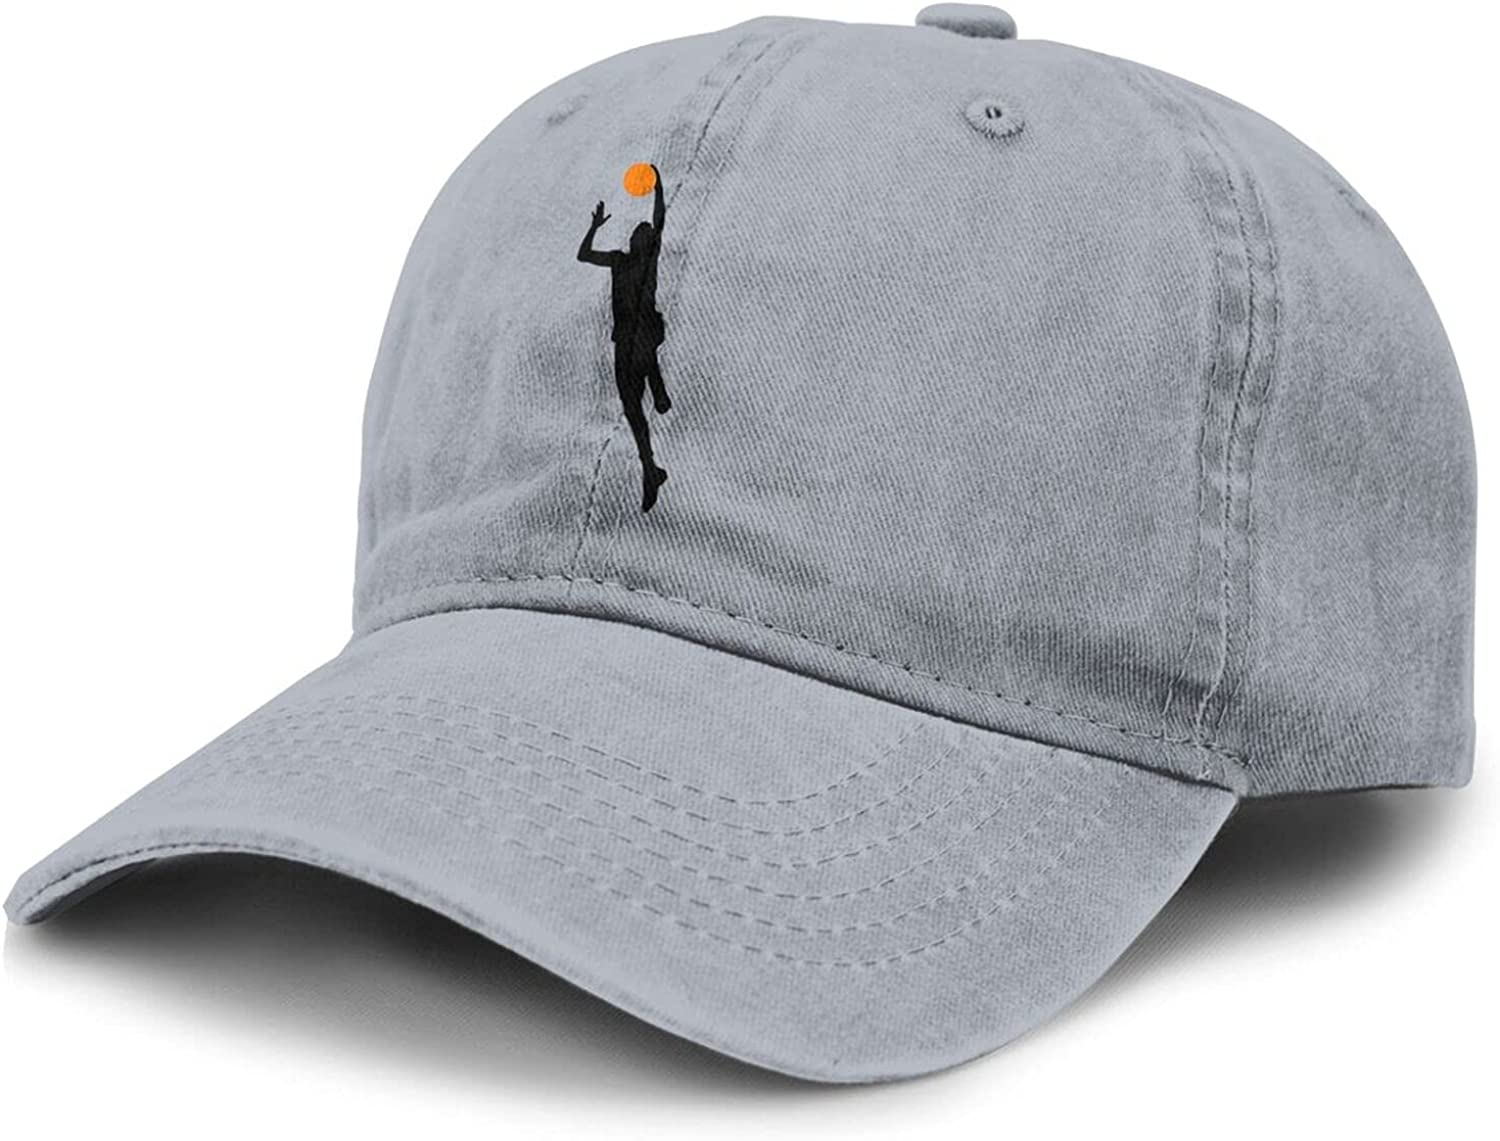 Basketball Moves and Skills Cheap and Durable Adult Cowboy Hat Unisex